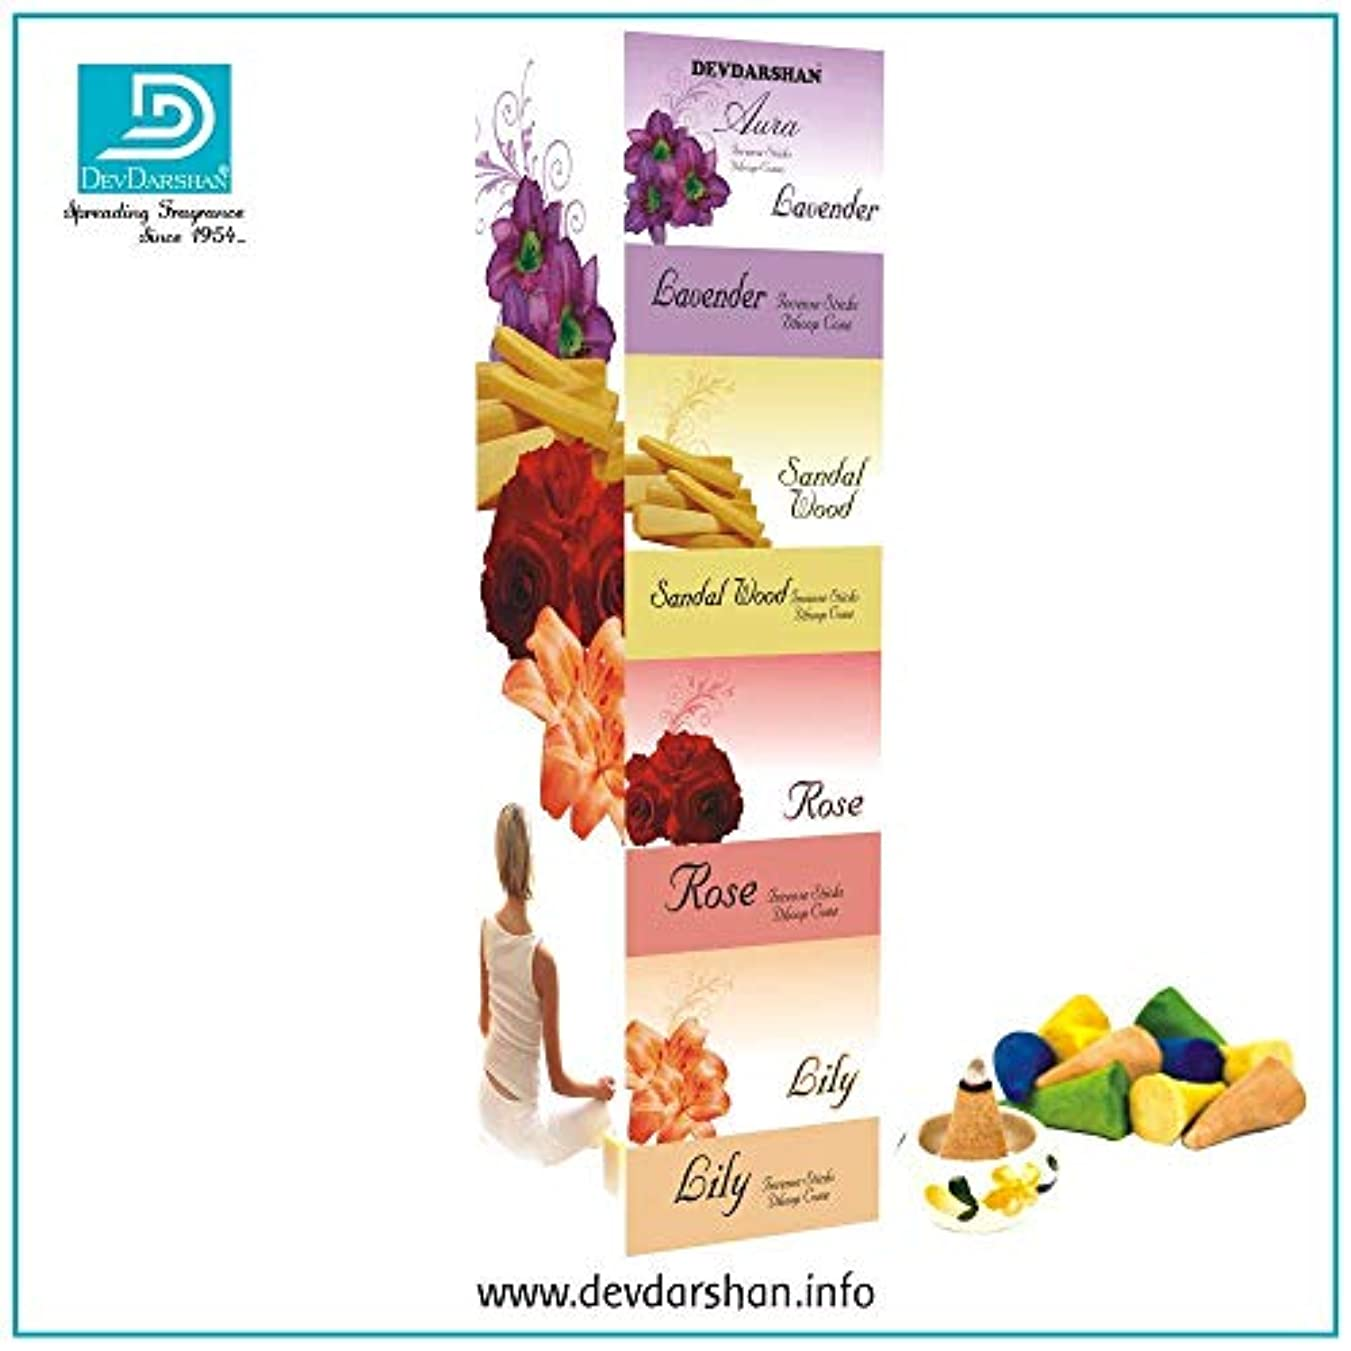 謝罪する住む反逆Devdarshan Aura Dry Dhoop Cones (Lavender, Sandalwood, Rose, Lily) 3 Units of 40g Each Fragrance, Pack of 12 Units